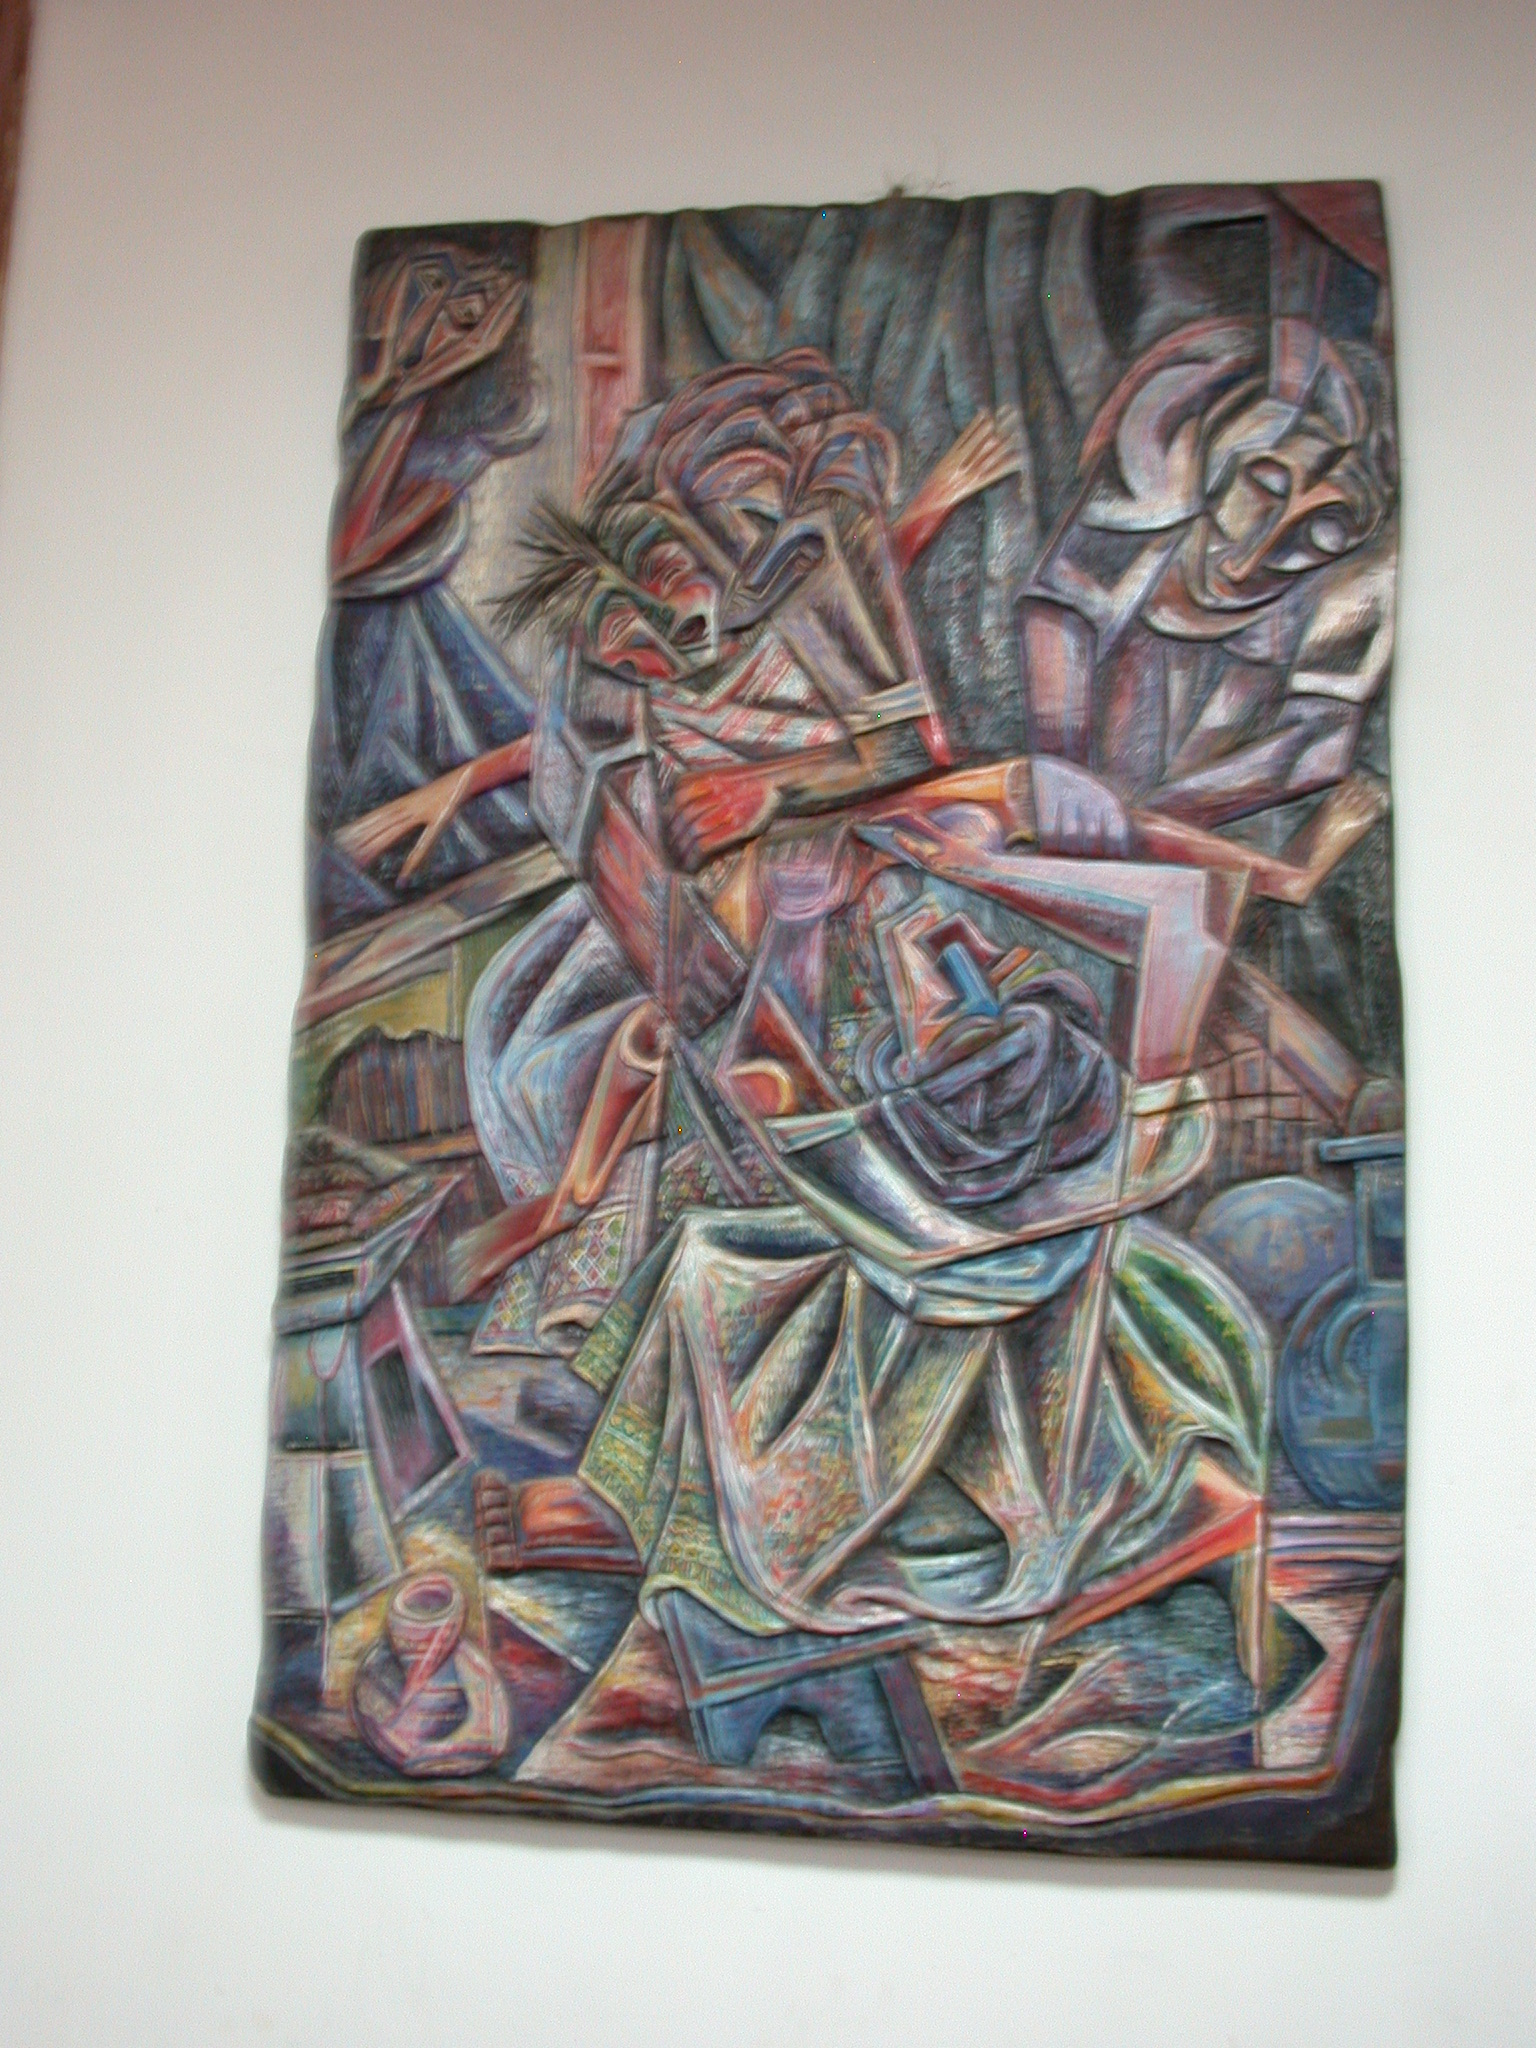 Genital Mutilation Painting by Abebe Zelelew (2003), National Museum, Addis Ababa, Ethiopia